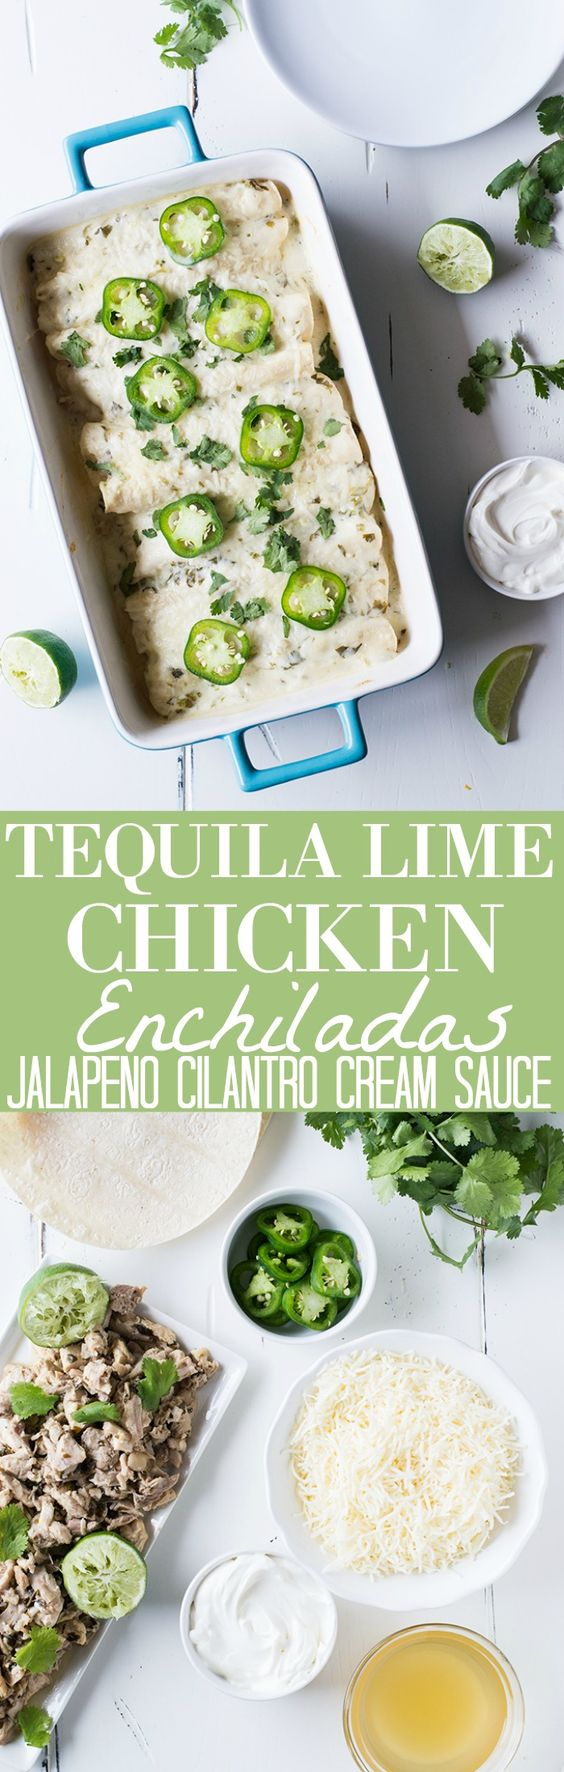 Tequila Lime Chicken Enchiladas with a Jalapeño Cilantro ...